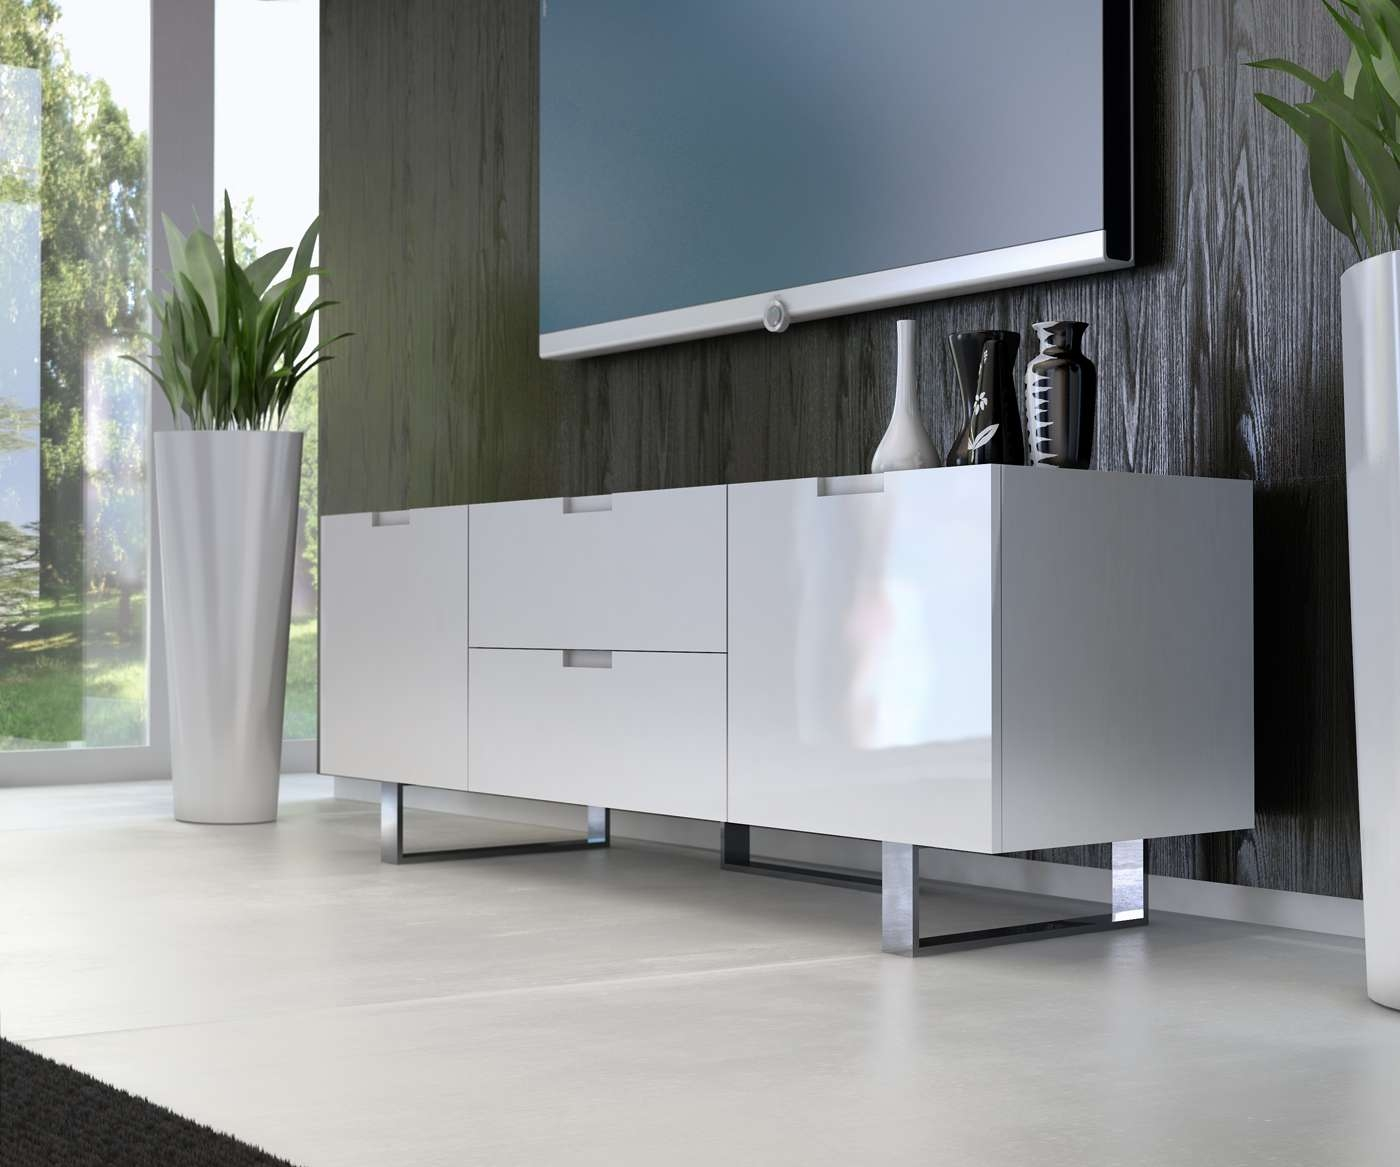 Contemporary Tv Stand In Wenge Walnut Or White Lacquer San Diego Intended For Modern Style Tv Stands (View 14 of 15)